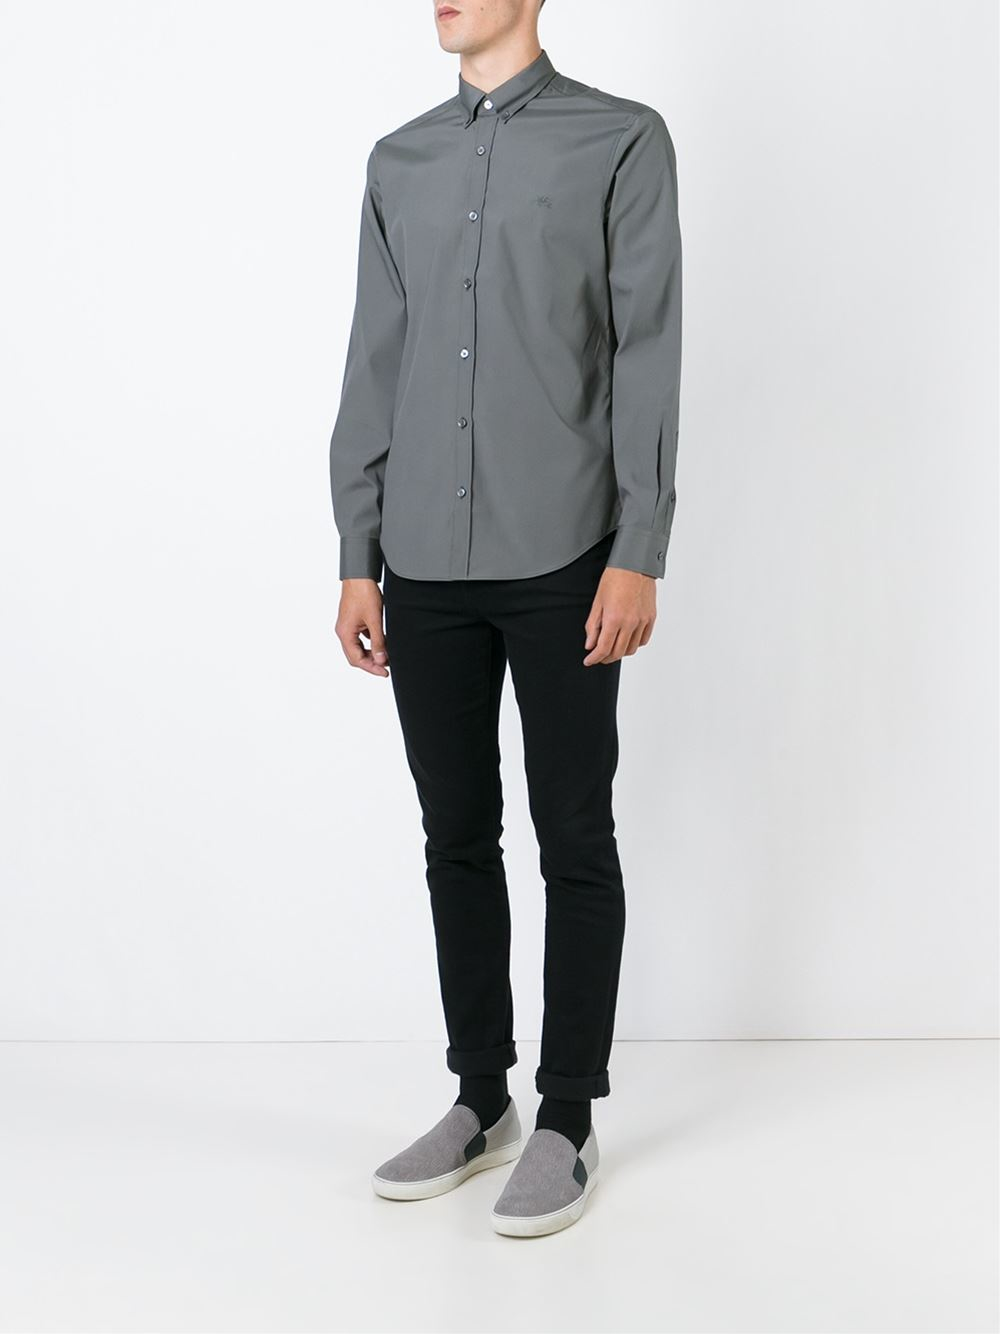 Burberry Brit Cotton Classic Button Down Shirt In Gray For